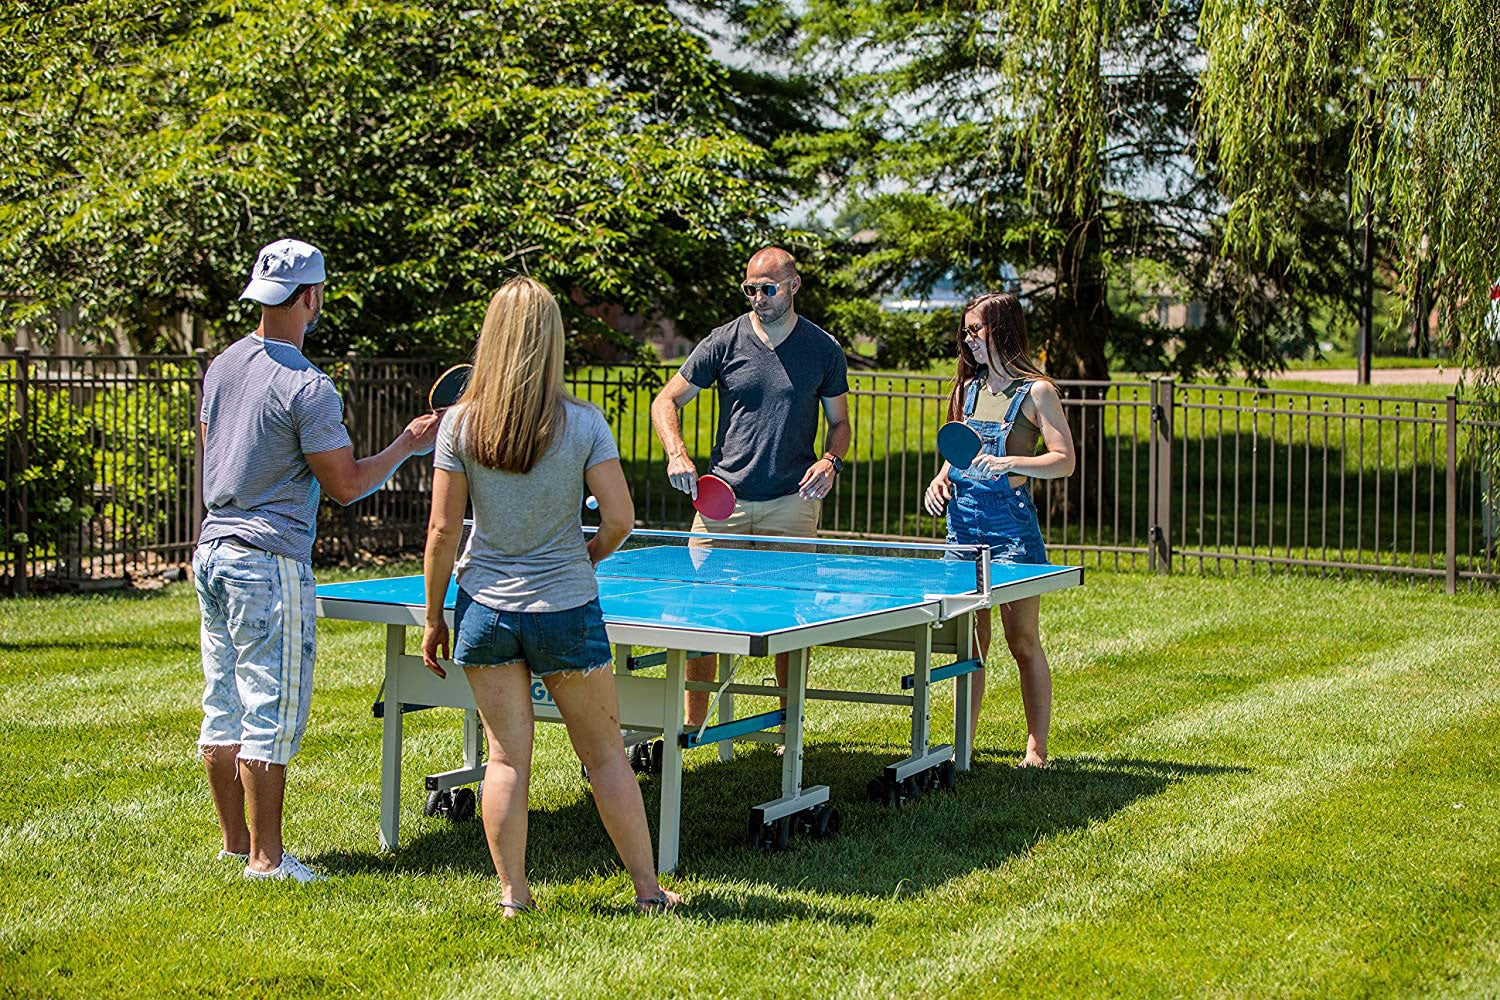 Find your next ping pong table